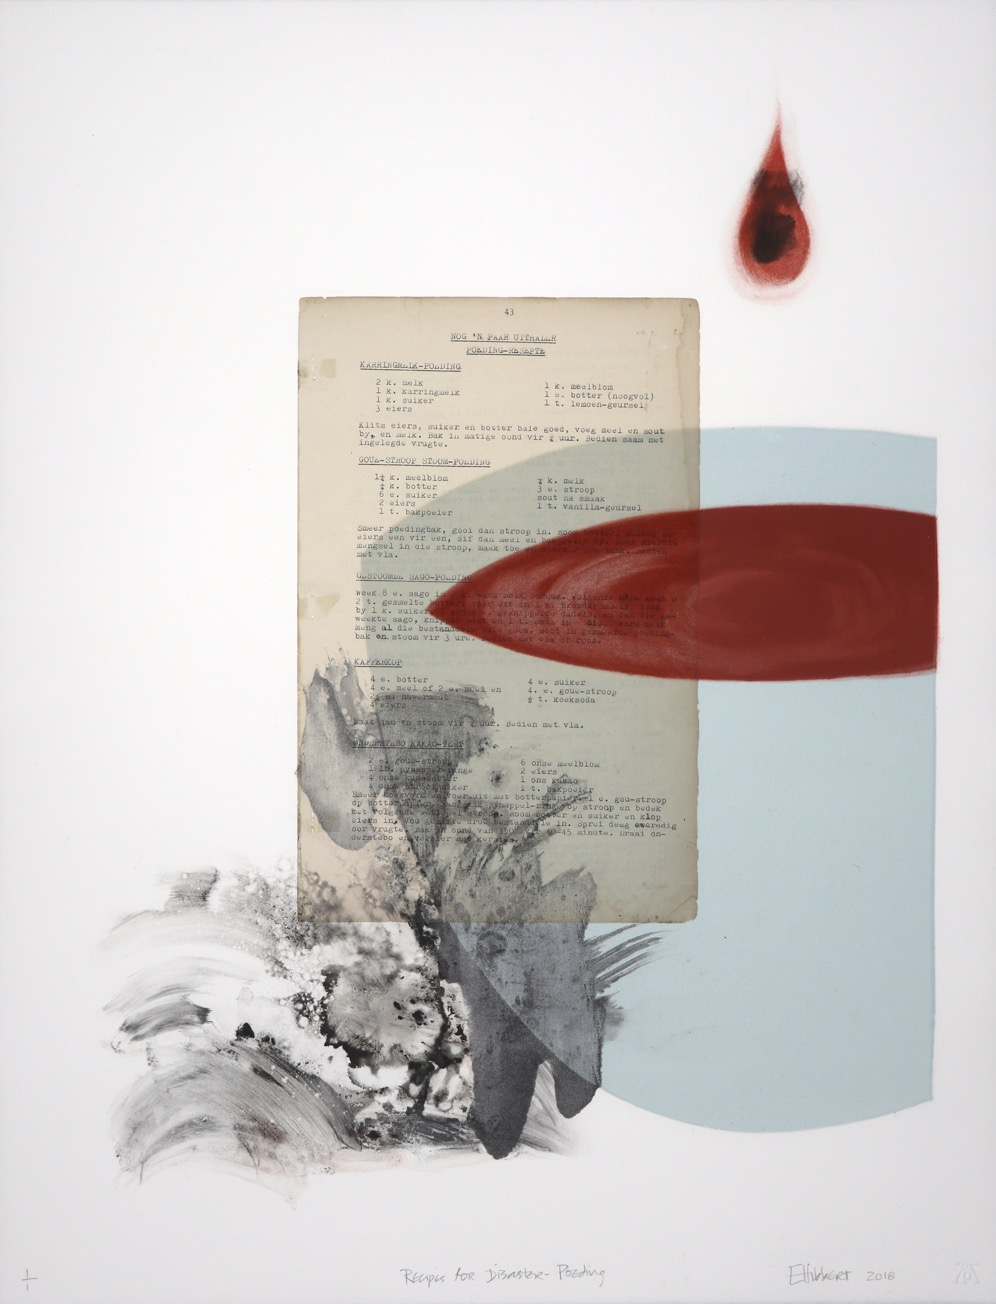 Light blue bowl seen from side containing red liquid and red drop suspended above it.Typed recipie page adhered to middle of monoprint.